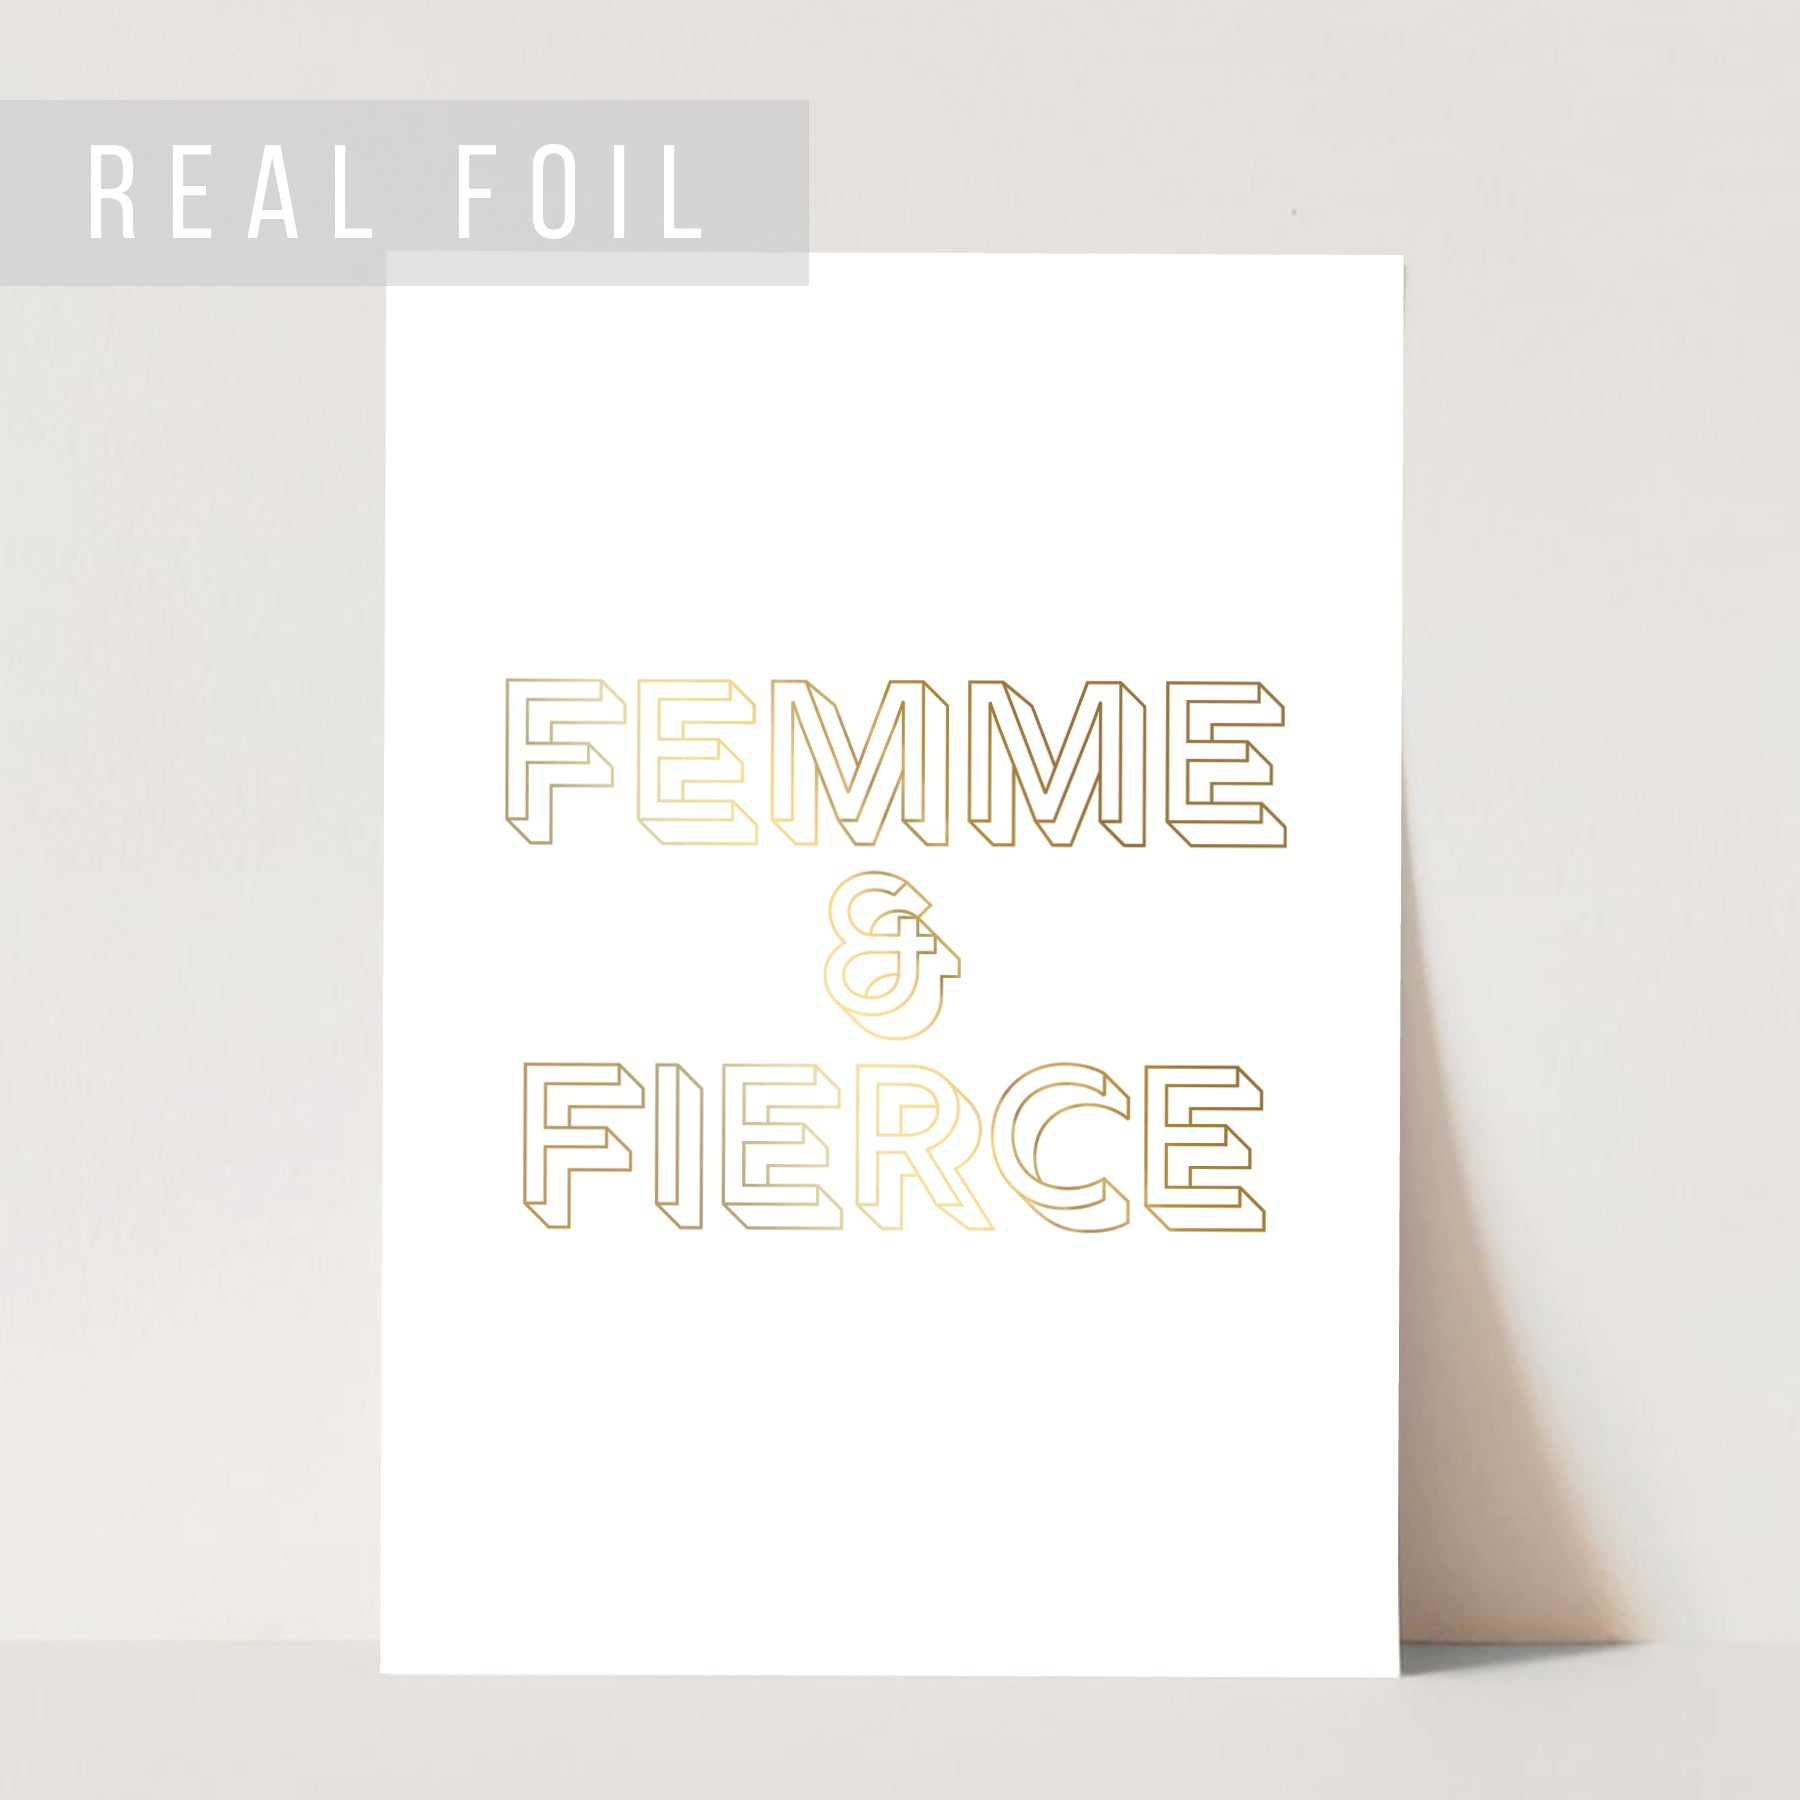 Femme and Fierce Foiled Art Print